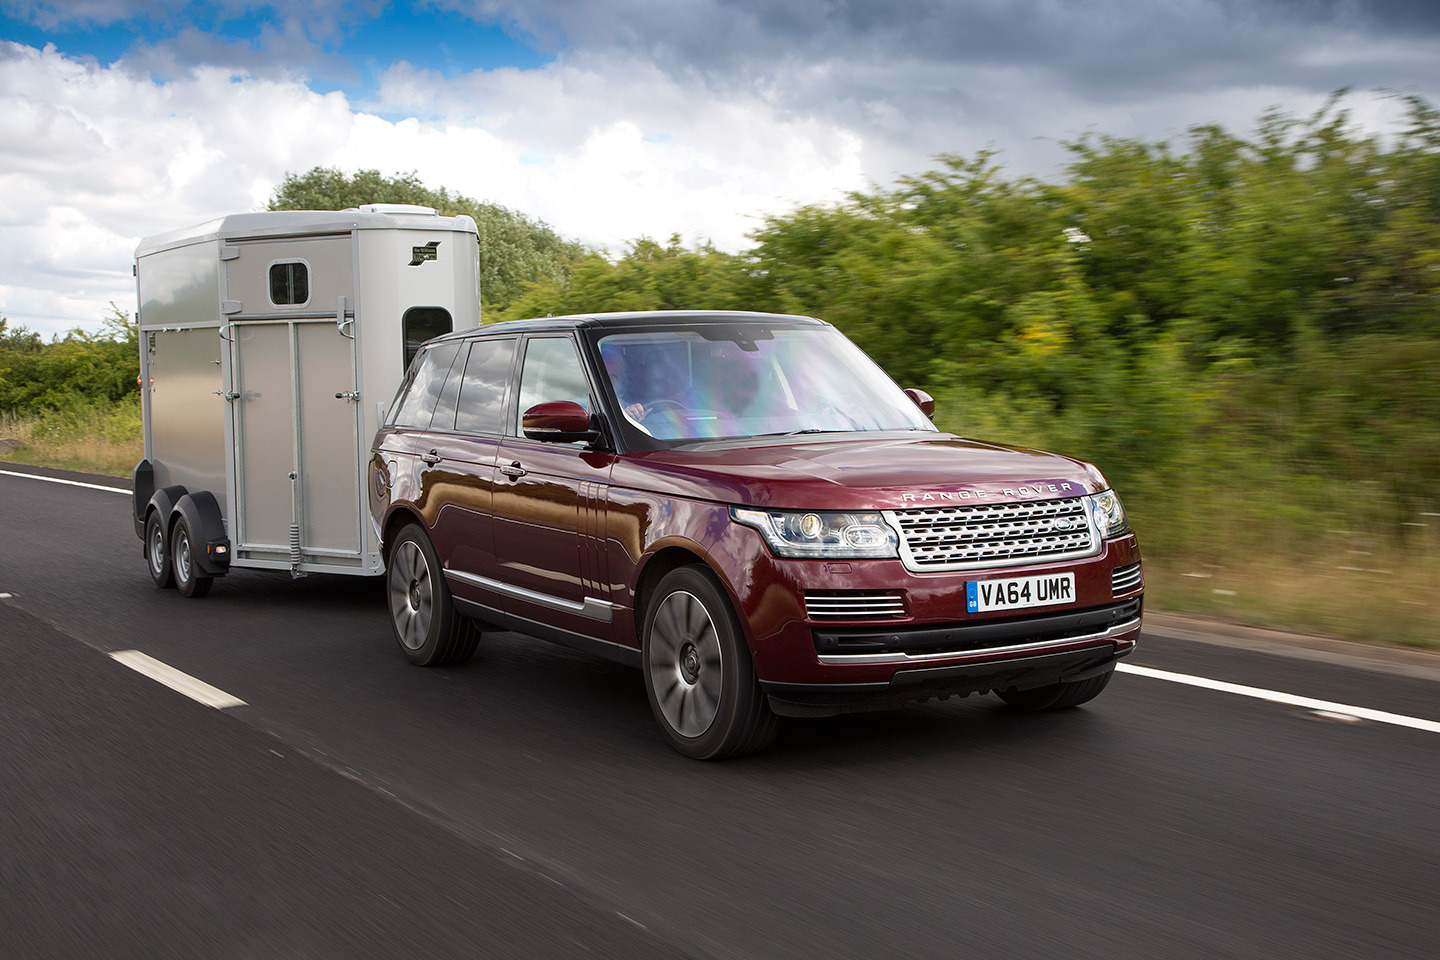 Land Rover Transparent trailer cargo sense 01